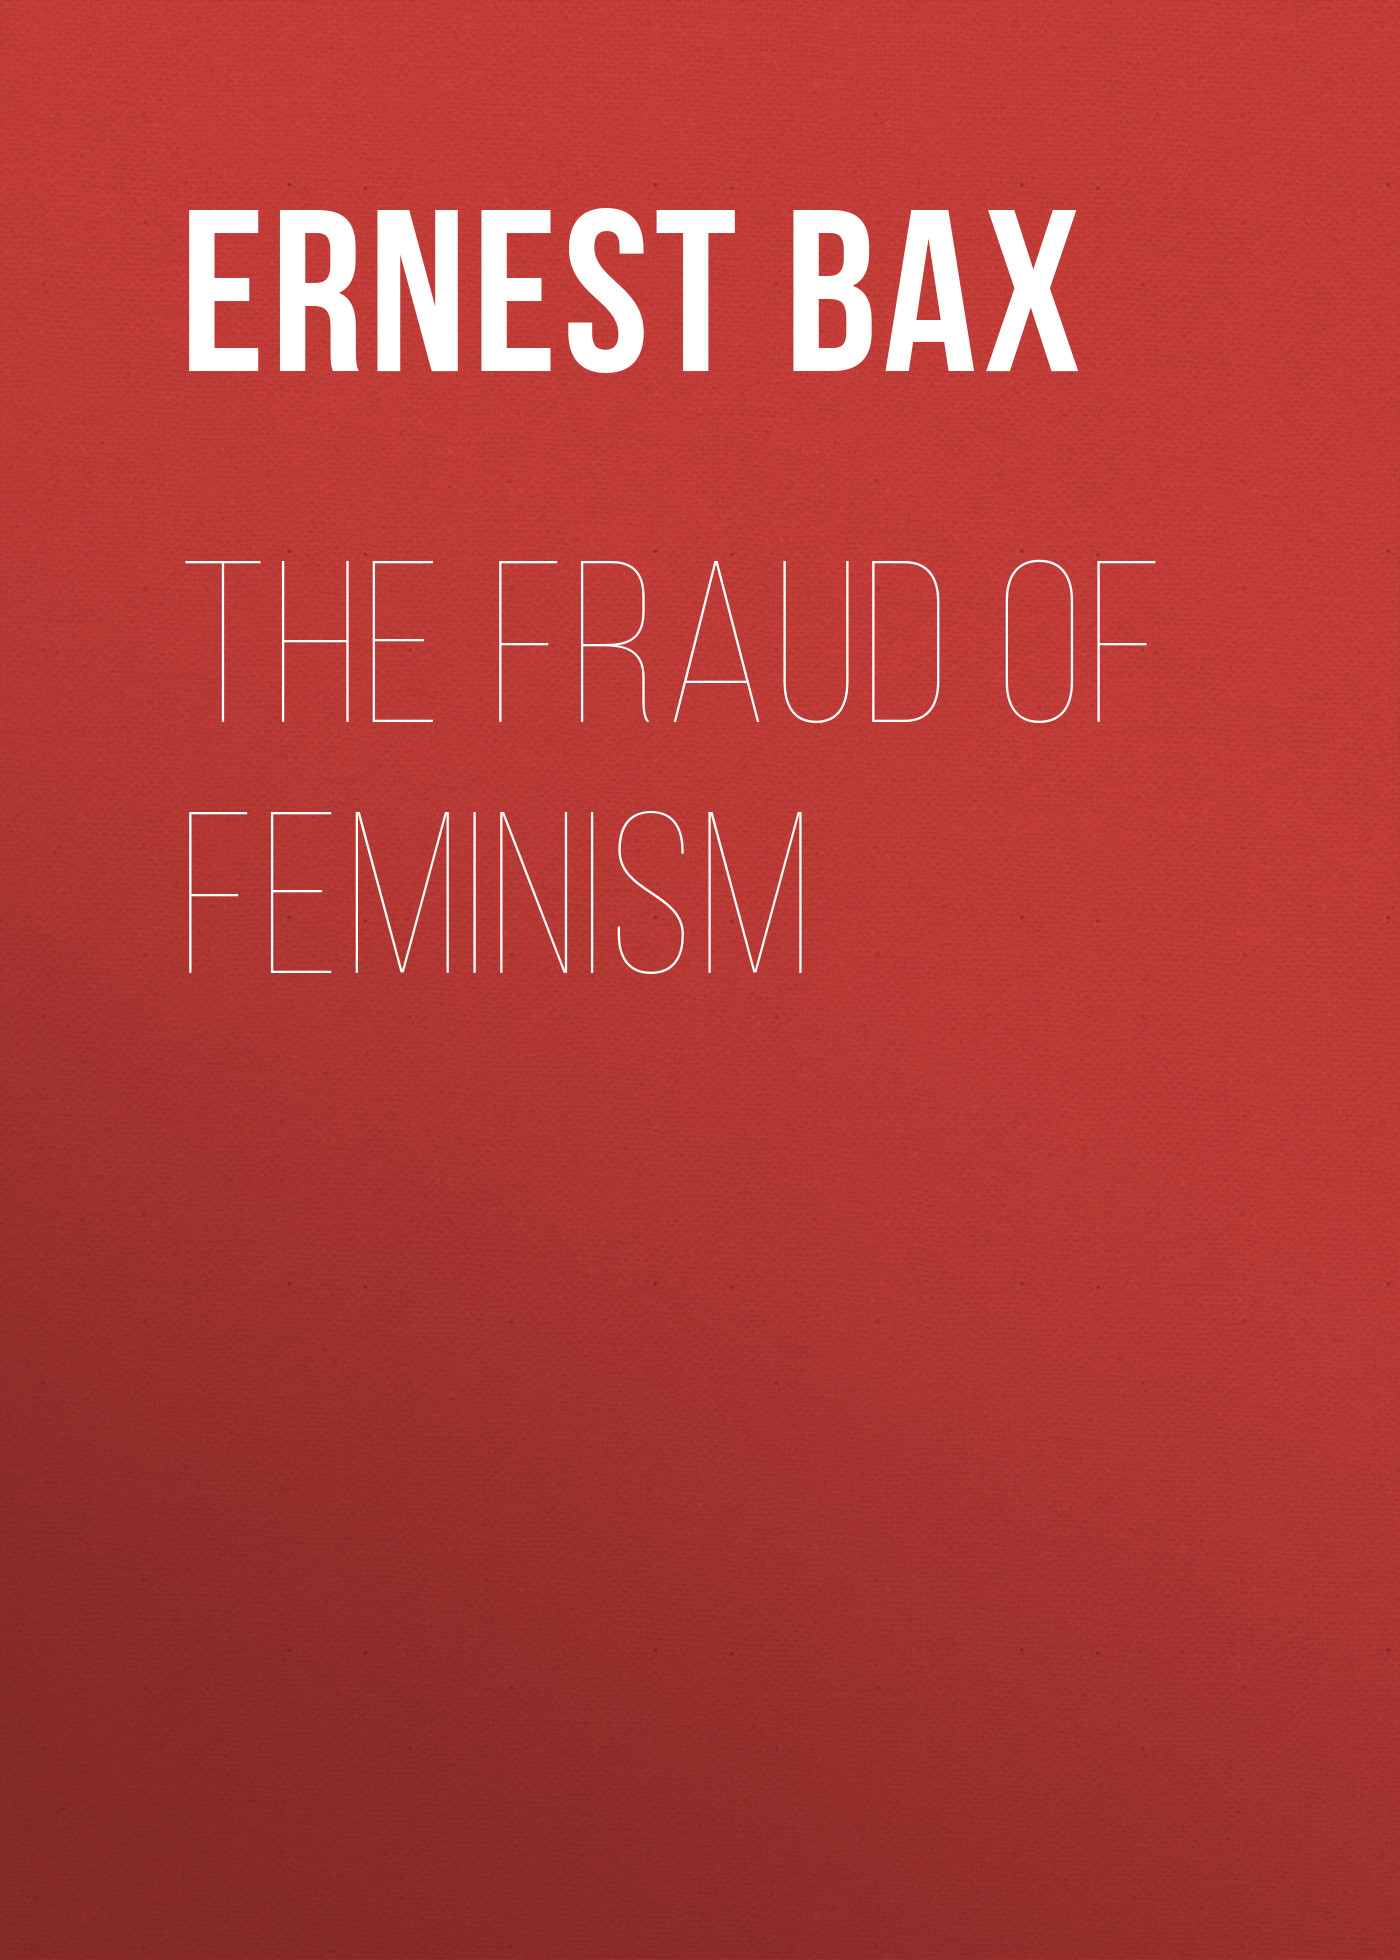 Bax Ernest Belfort The Fraud of Feminism bax ernest belfort jean paul marat